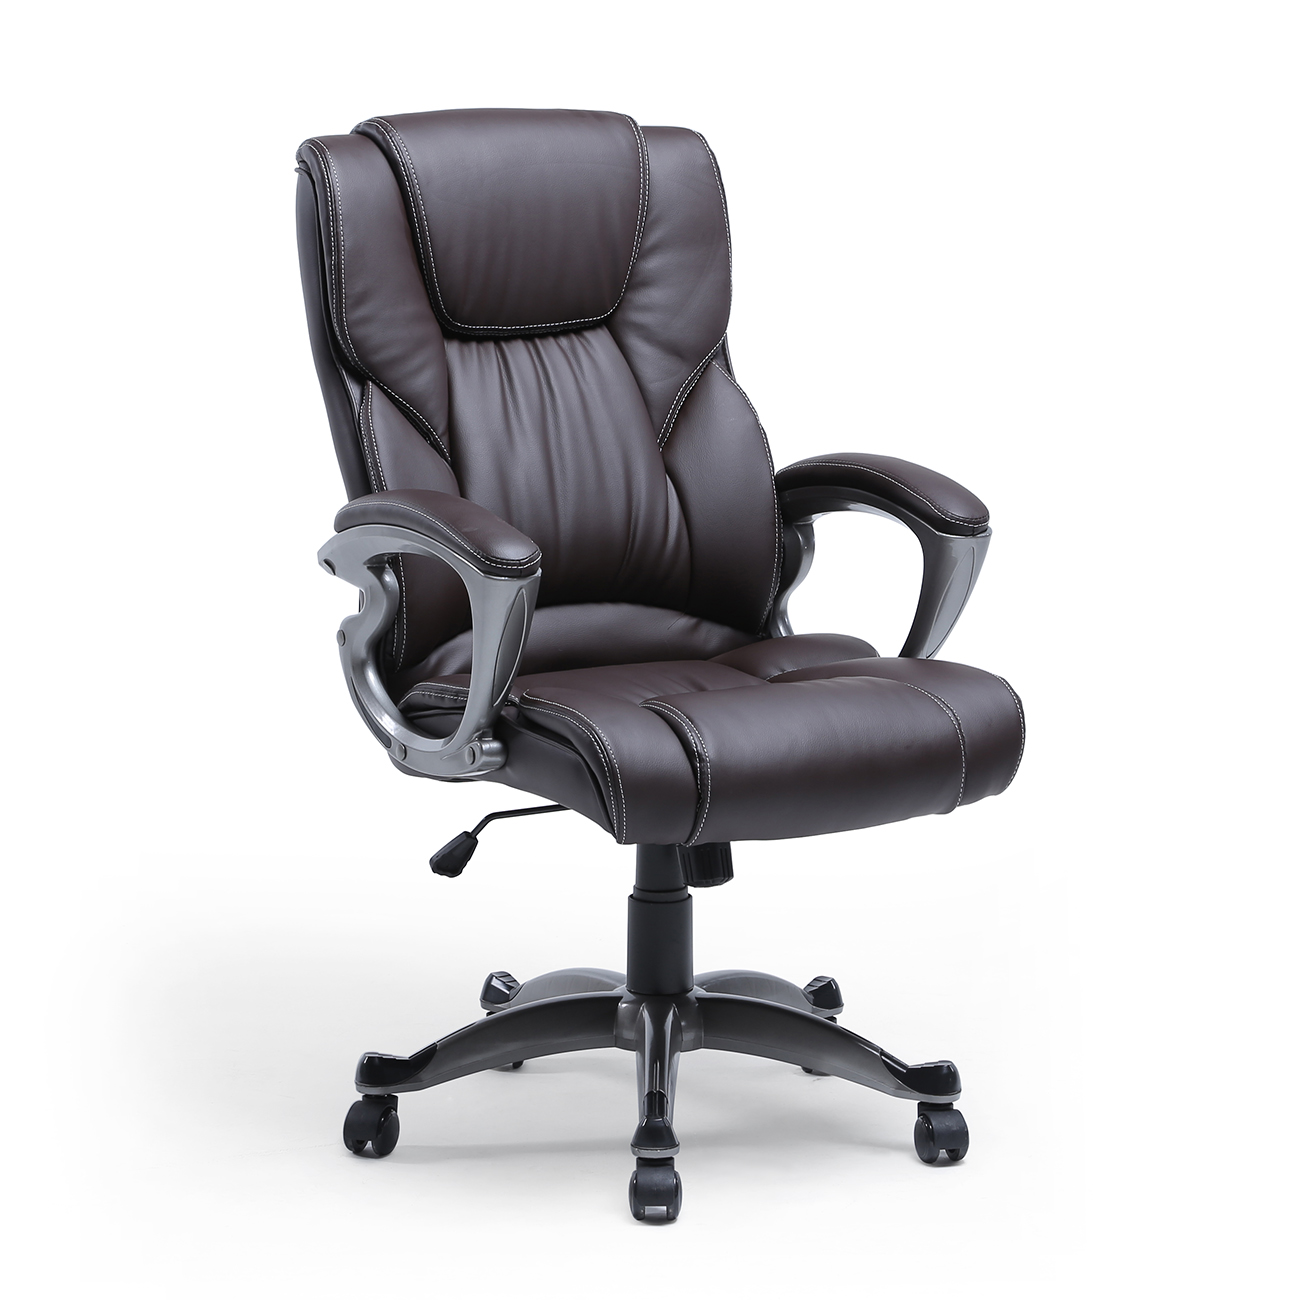 Ergonomic Computer Chair High Back Pu Leather Executive Ergonomic Office Chair Desk